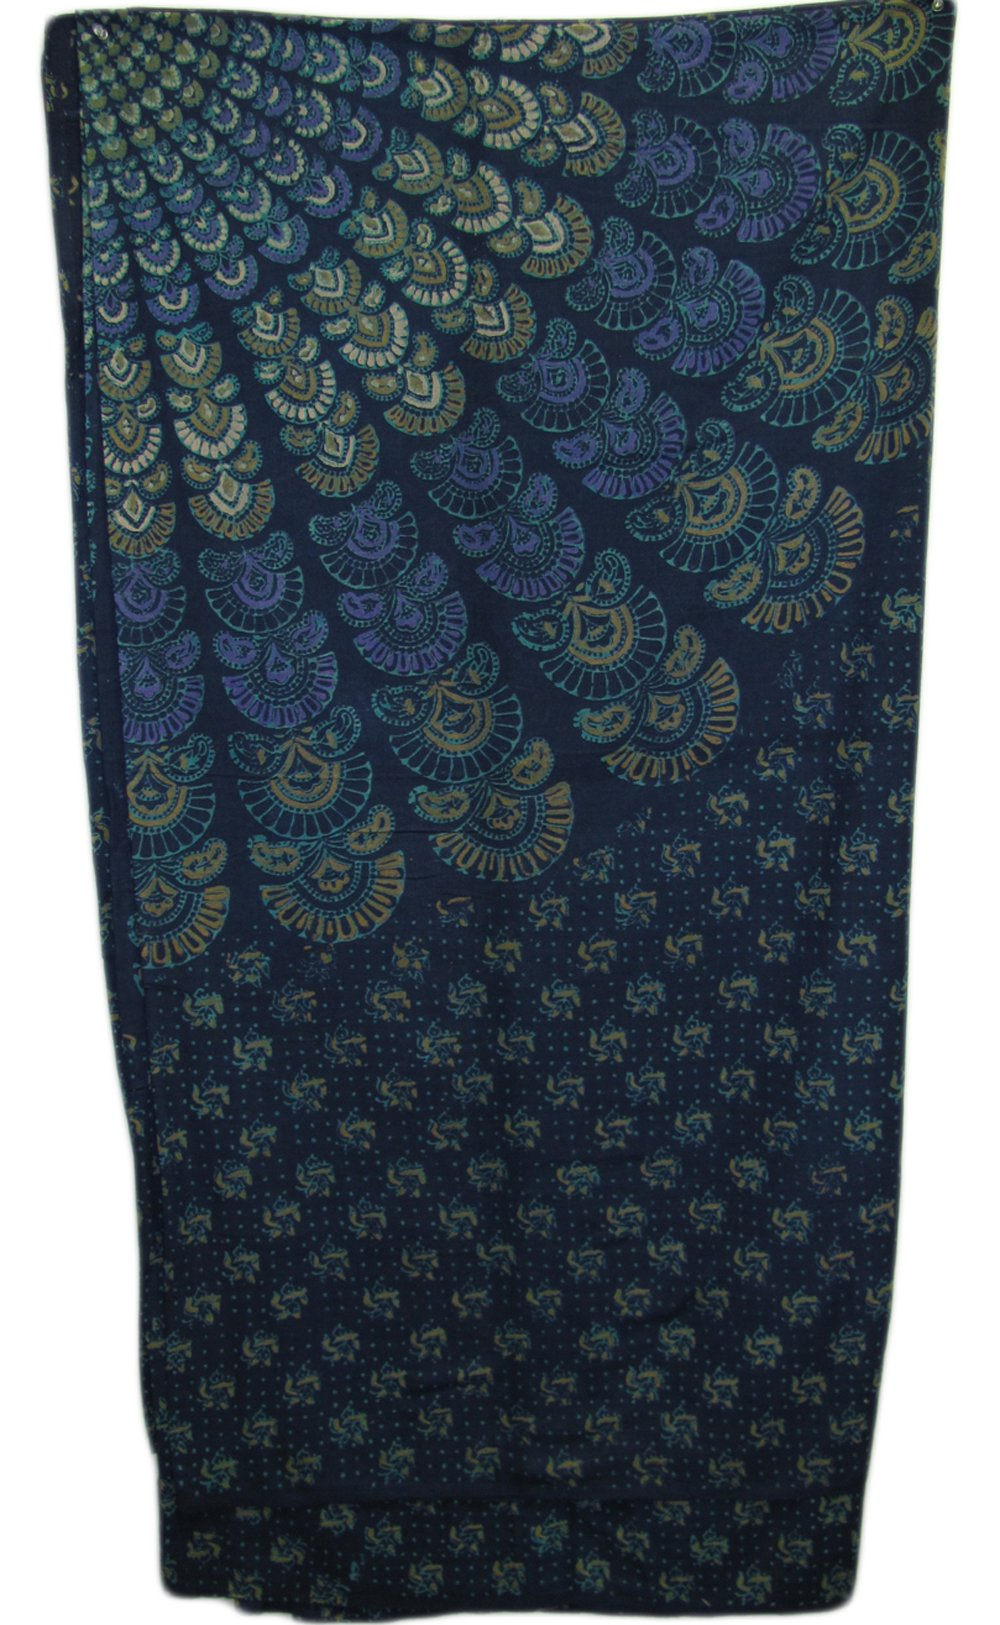 India Navy Blue Handloomed Cotton Mandala Peacock Bedspread Blanket Throw Tapestry 110''x 110'' (King Size) by Rajasthan Cottage (Image #2)